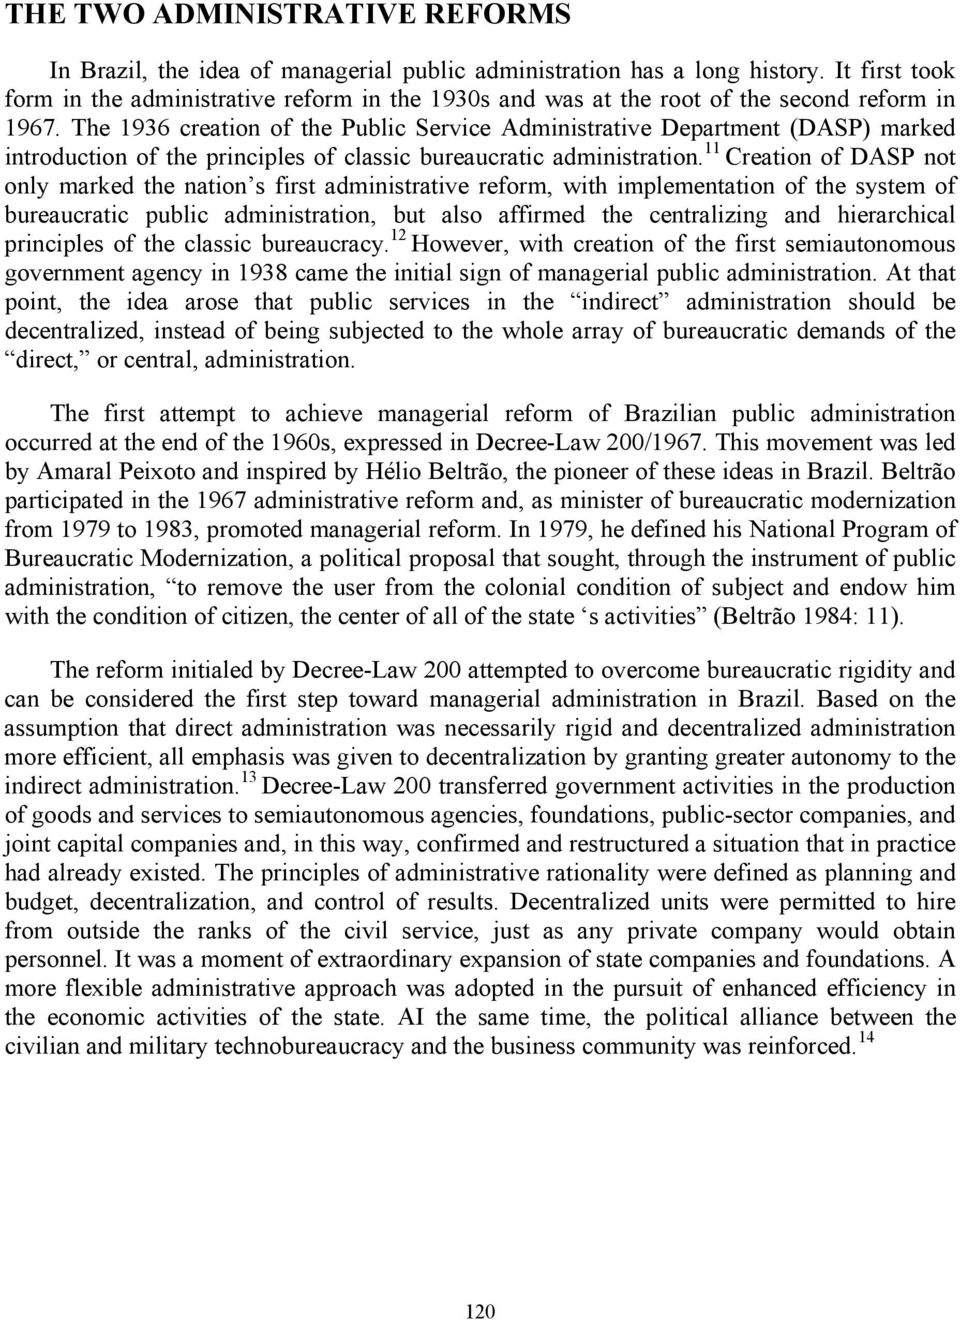 The 1936 creation of the Public Service Administrative Department (DASP) marked introduction of the principles of classic bureaucratic administration.